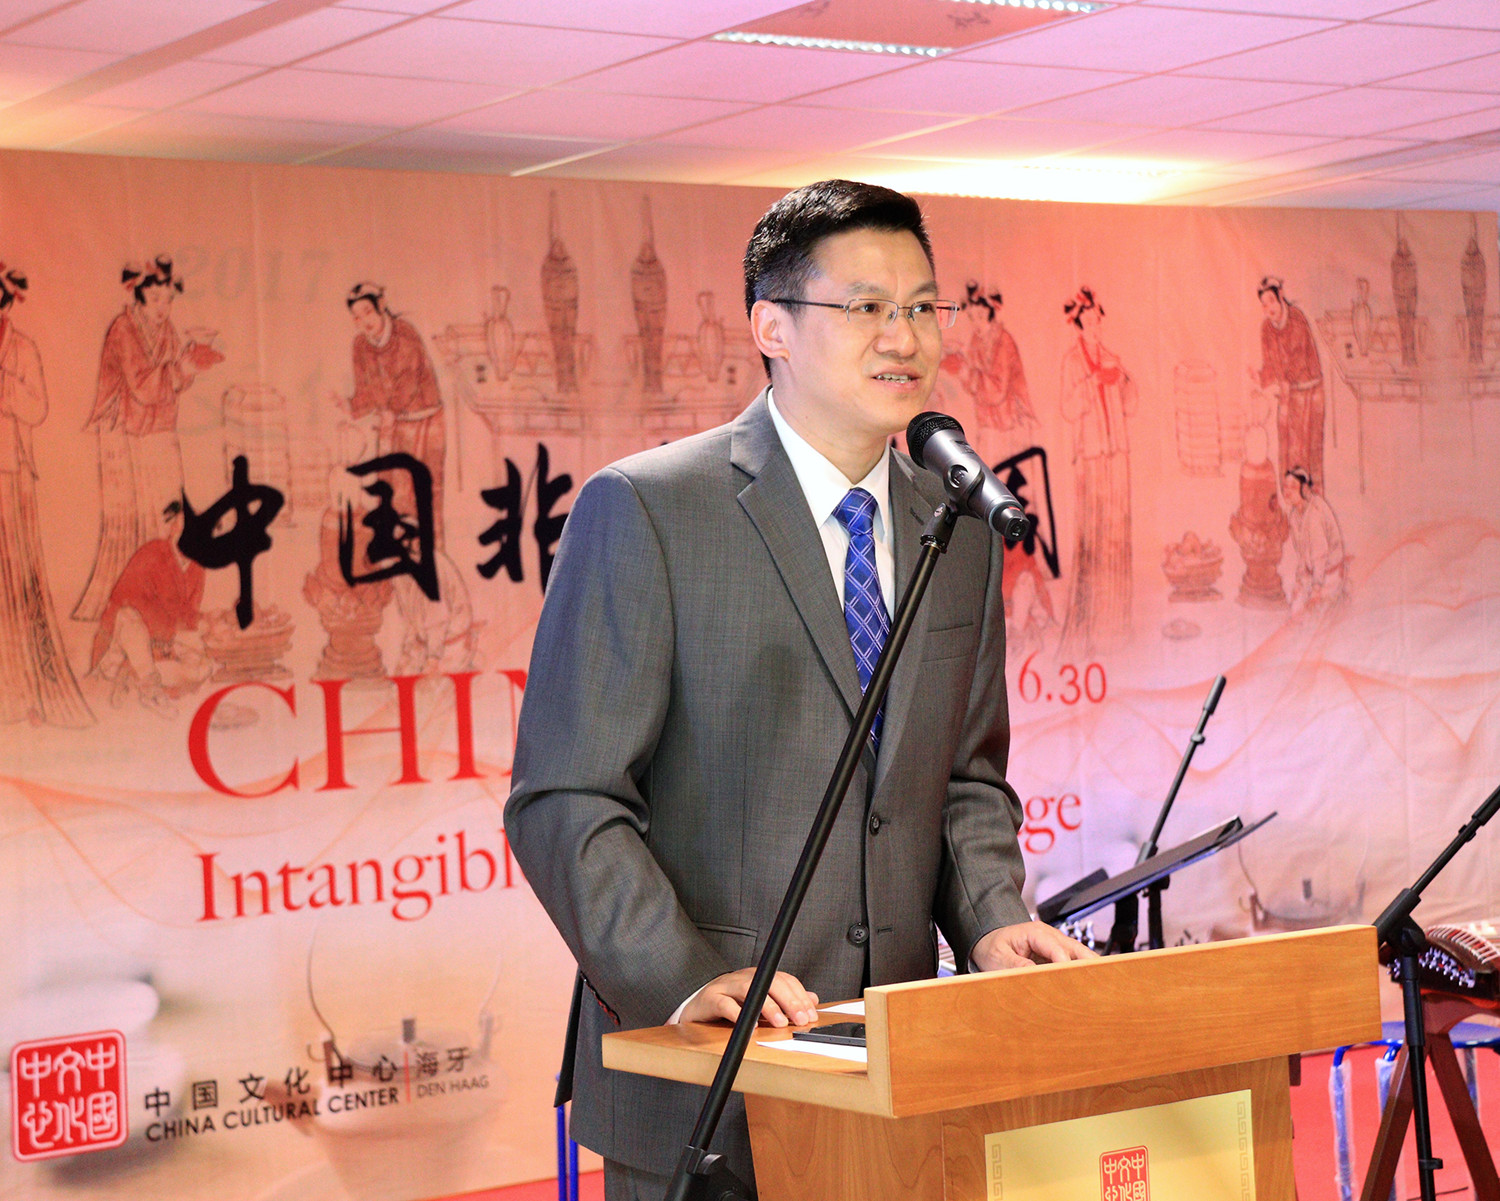 China Culture Week successfully launched in China Cultural Center